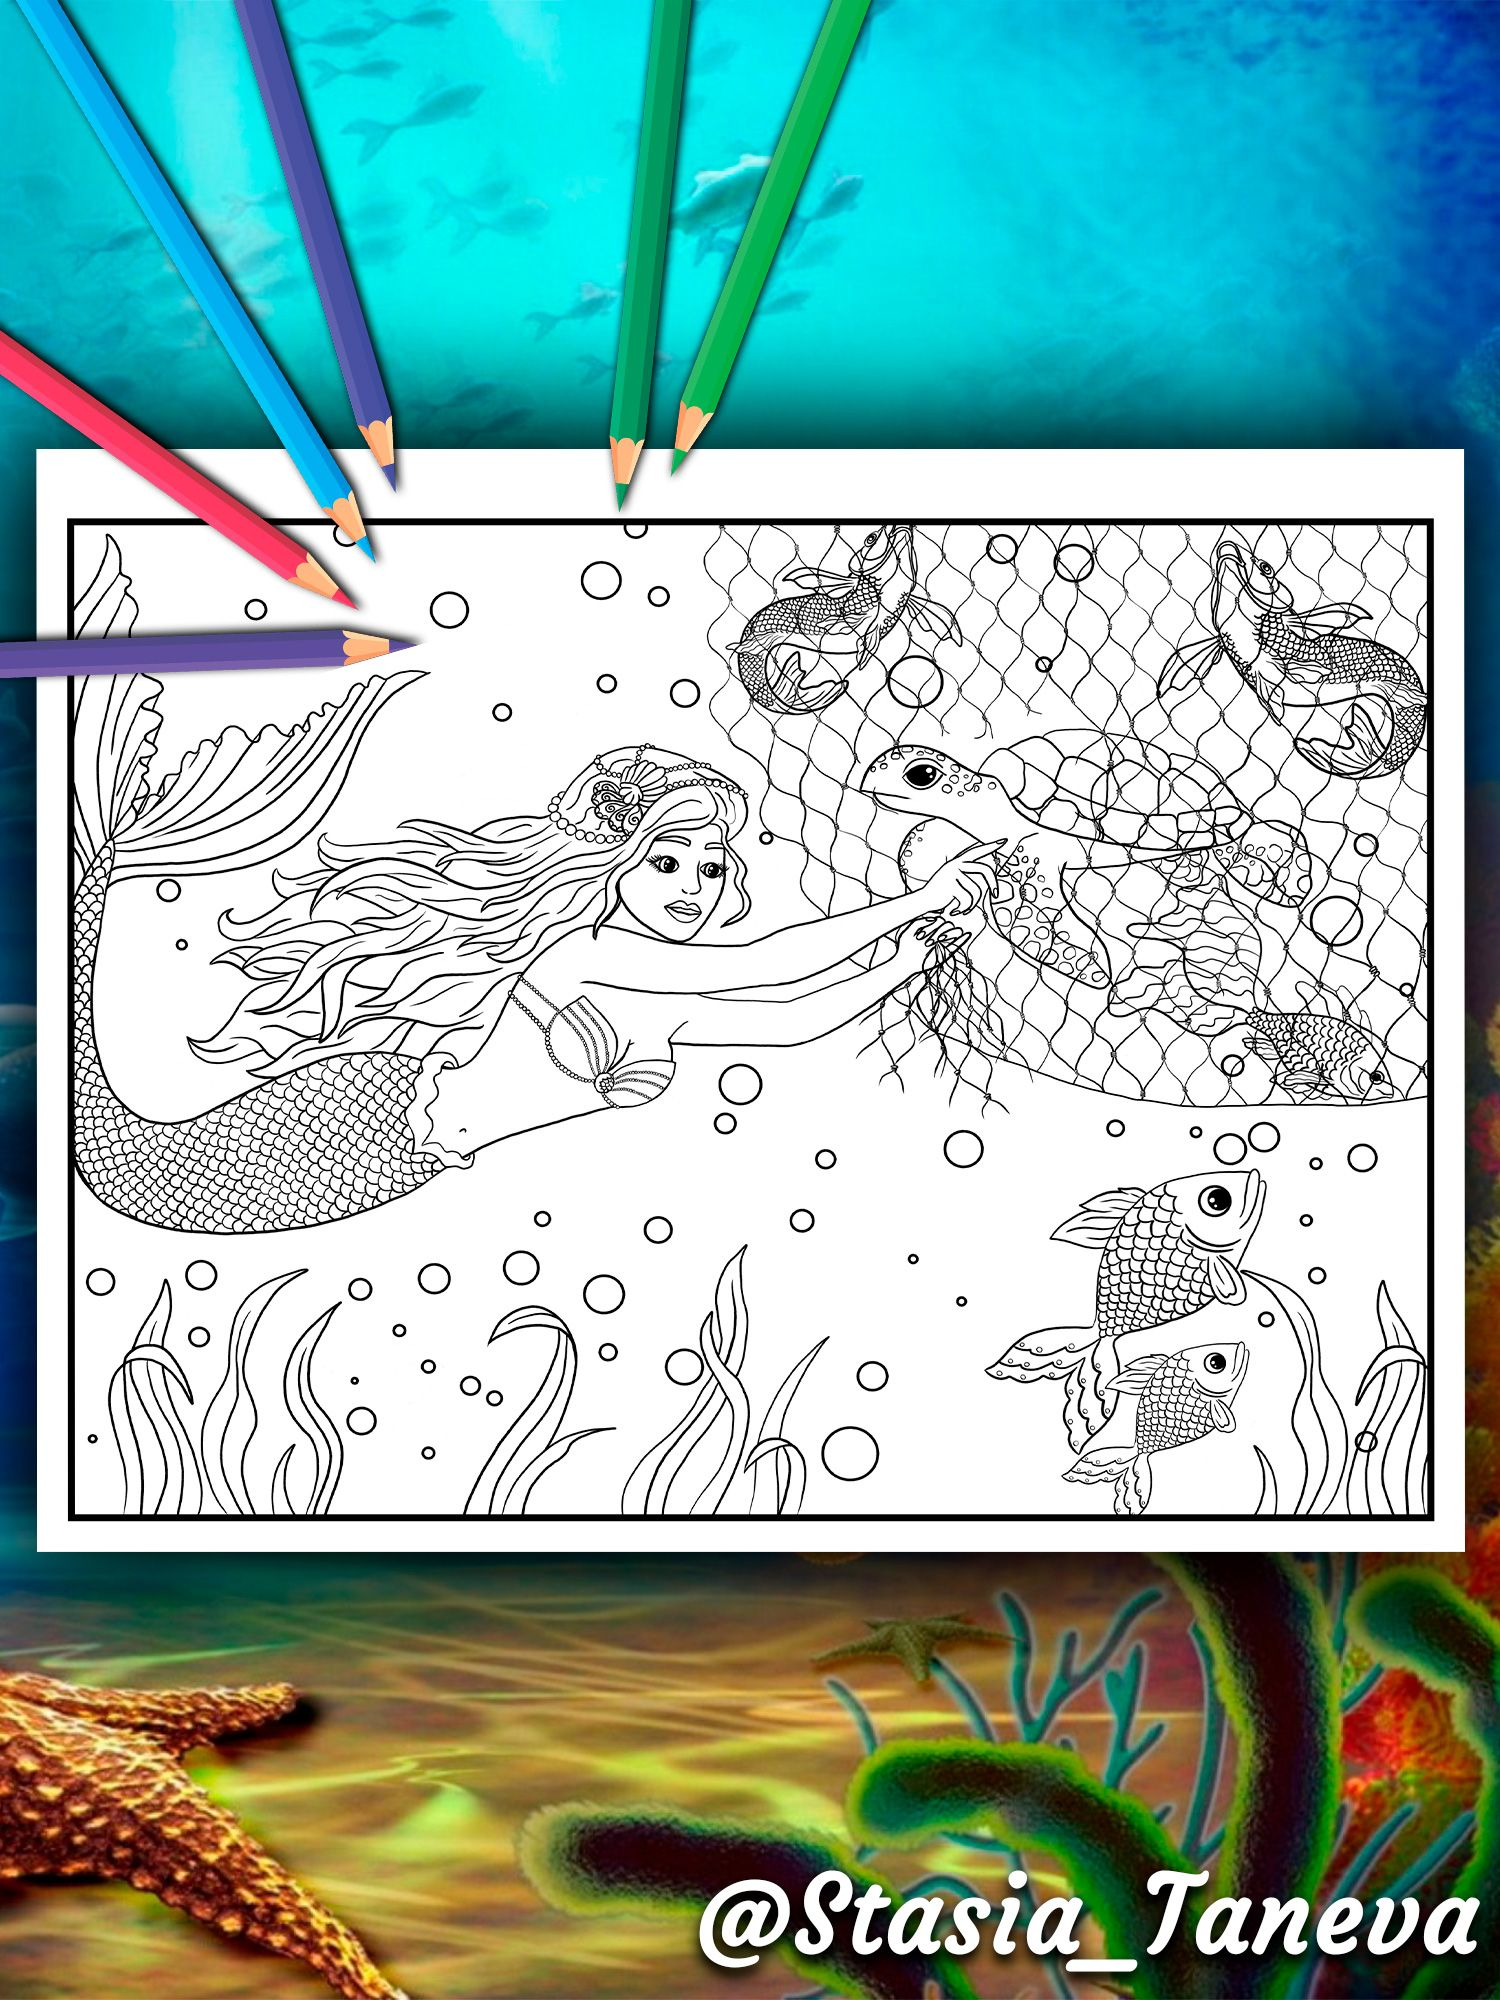 Mermaid Heroically Rescues A Turtle Mermaid Coloring Book For Adults By Stasia Taneva Page 14 Mermaid Coloring Book Unique Coloring Pages Coloring Books